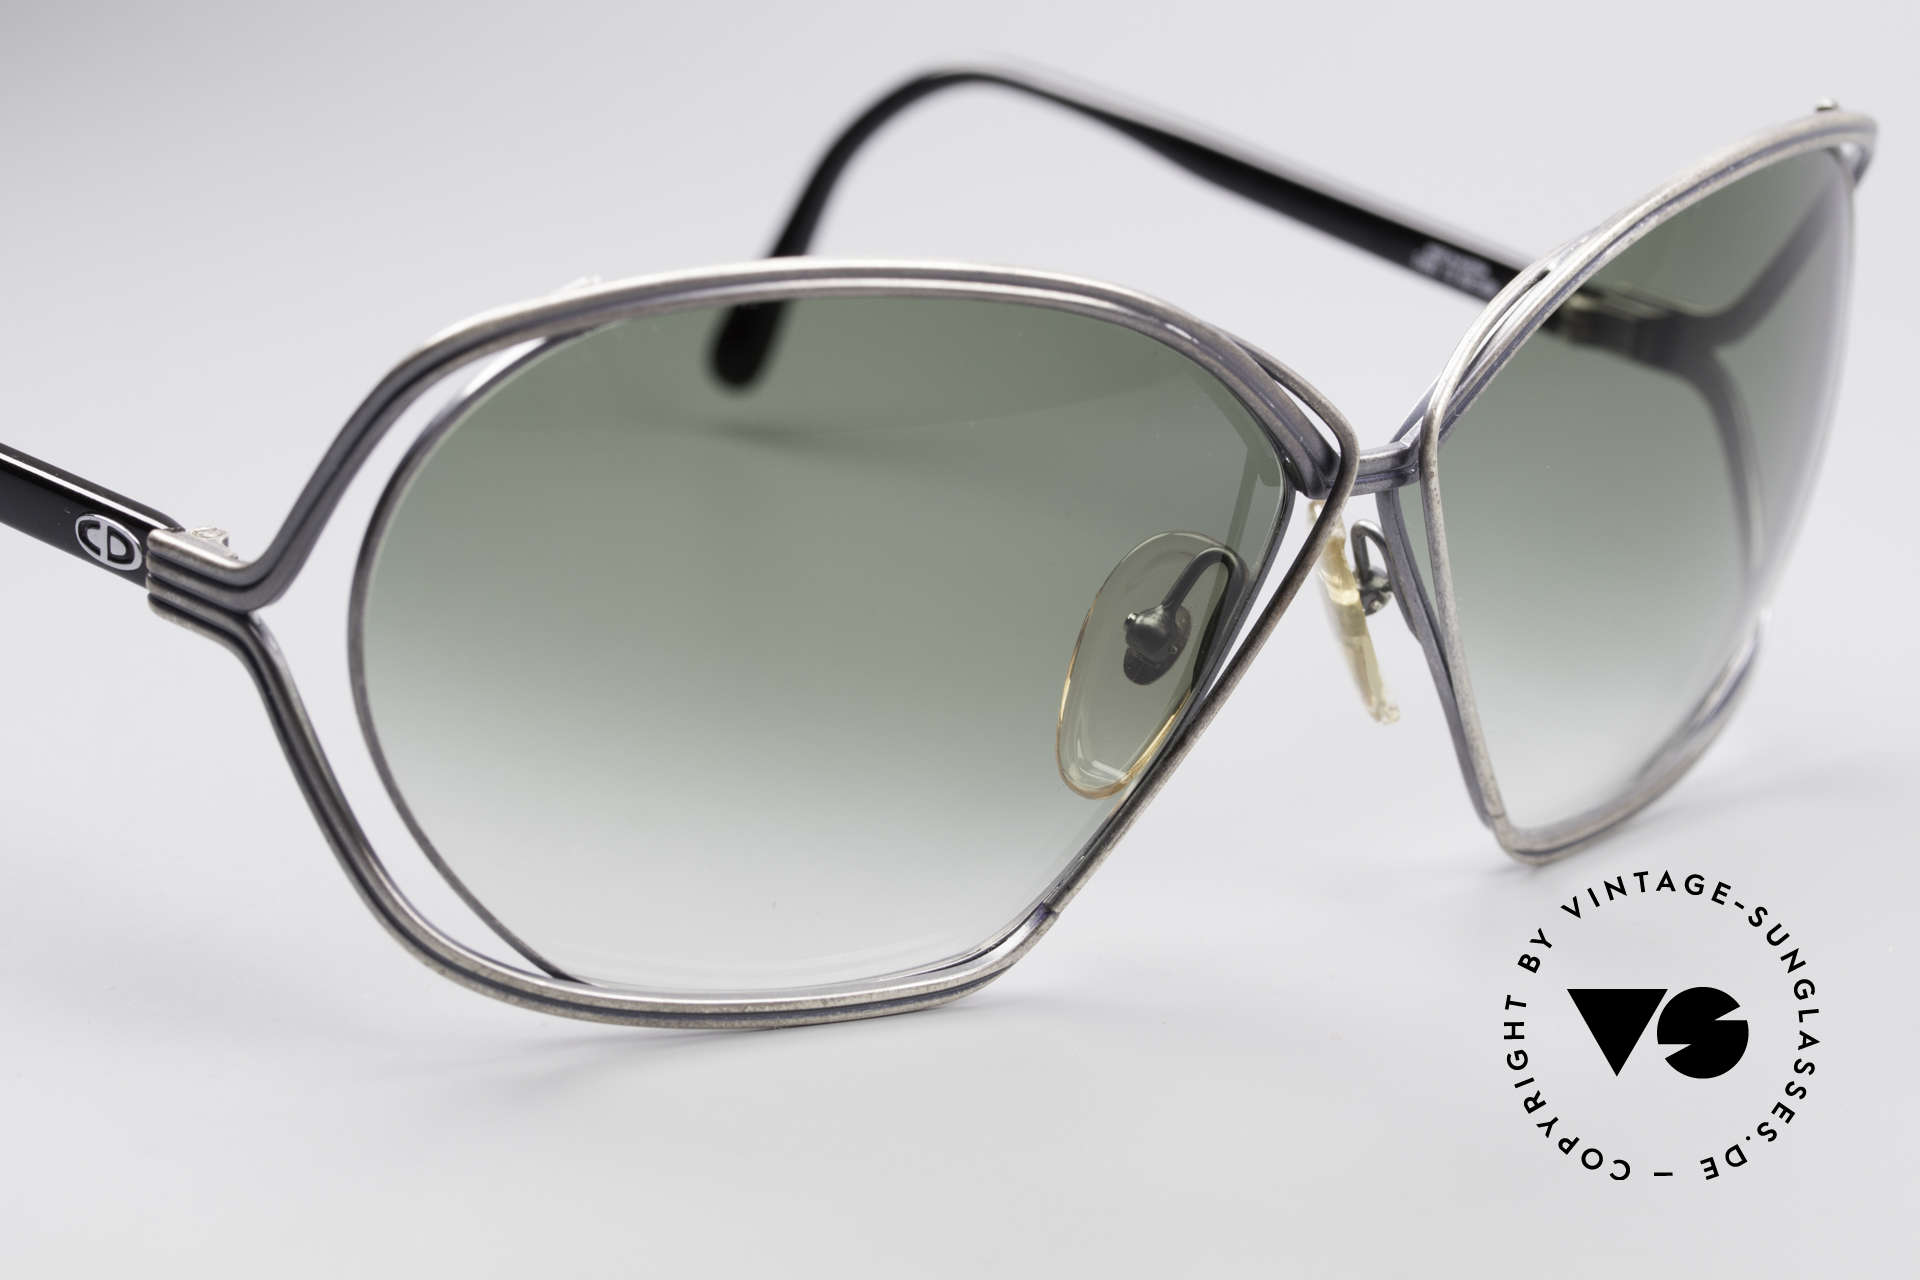 Christian Dior 2499 Ladies XL 80's Sunglasses, new old stock (like all our rare Chr. Dior sunglasses), Made for Women